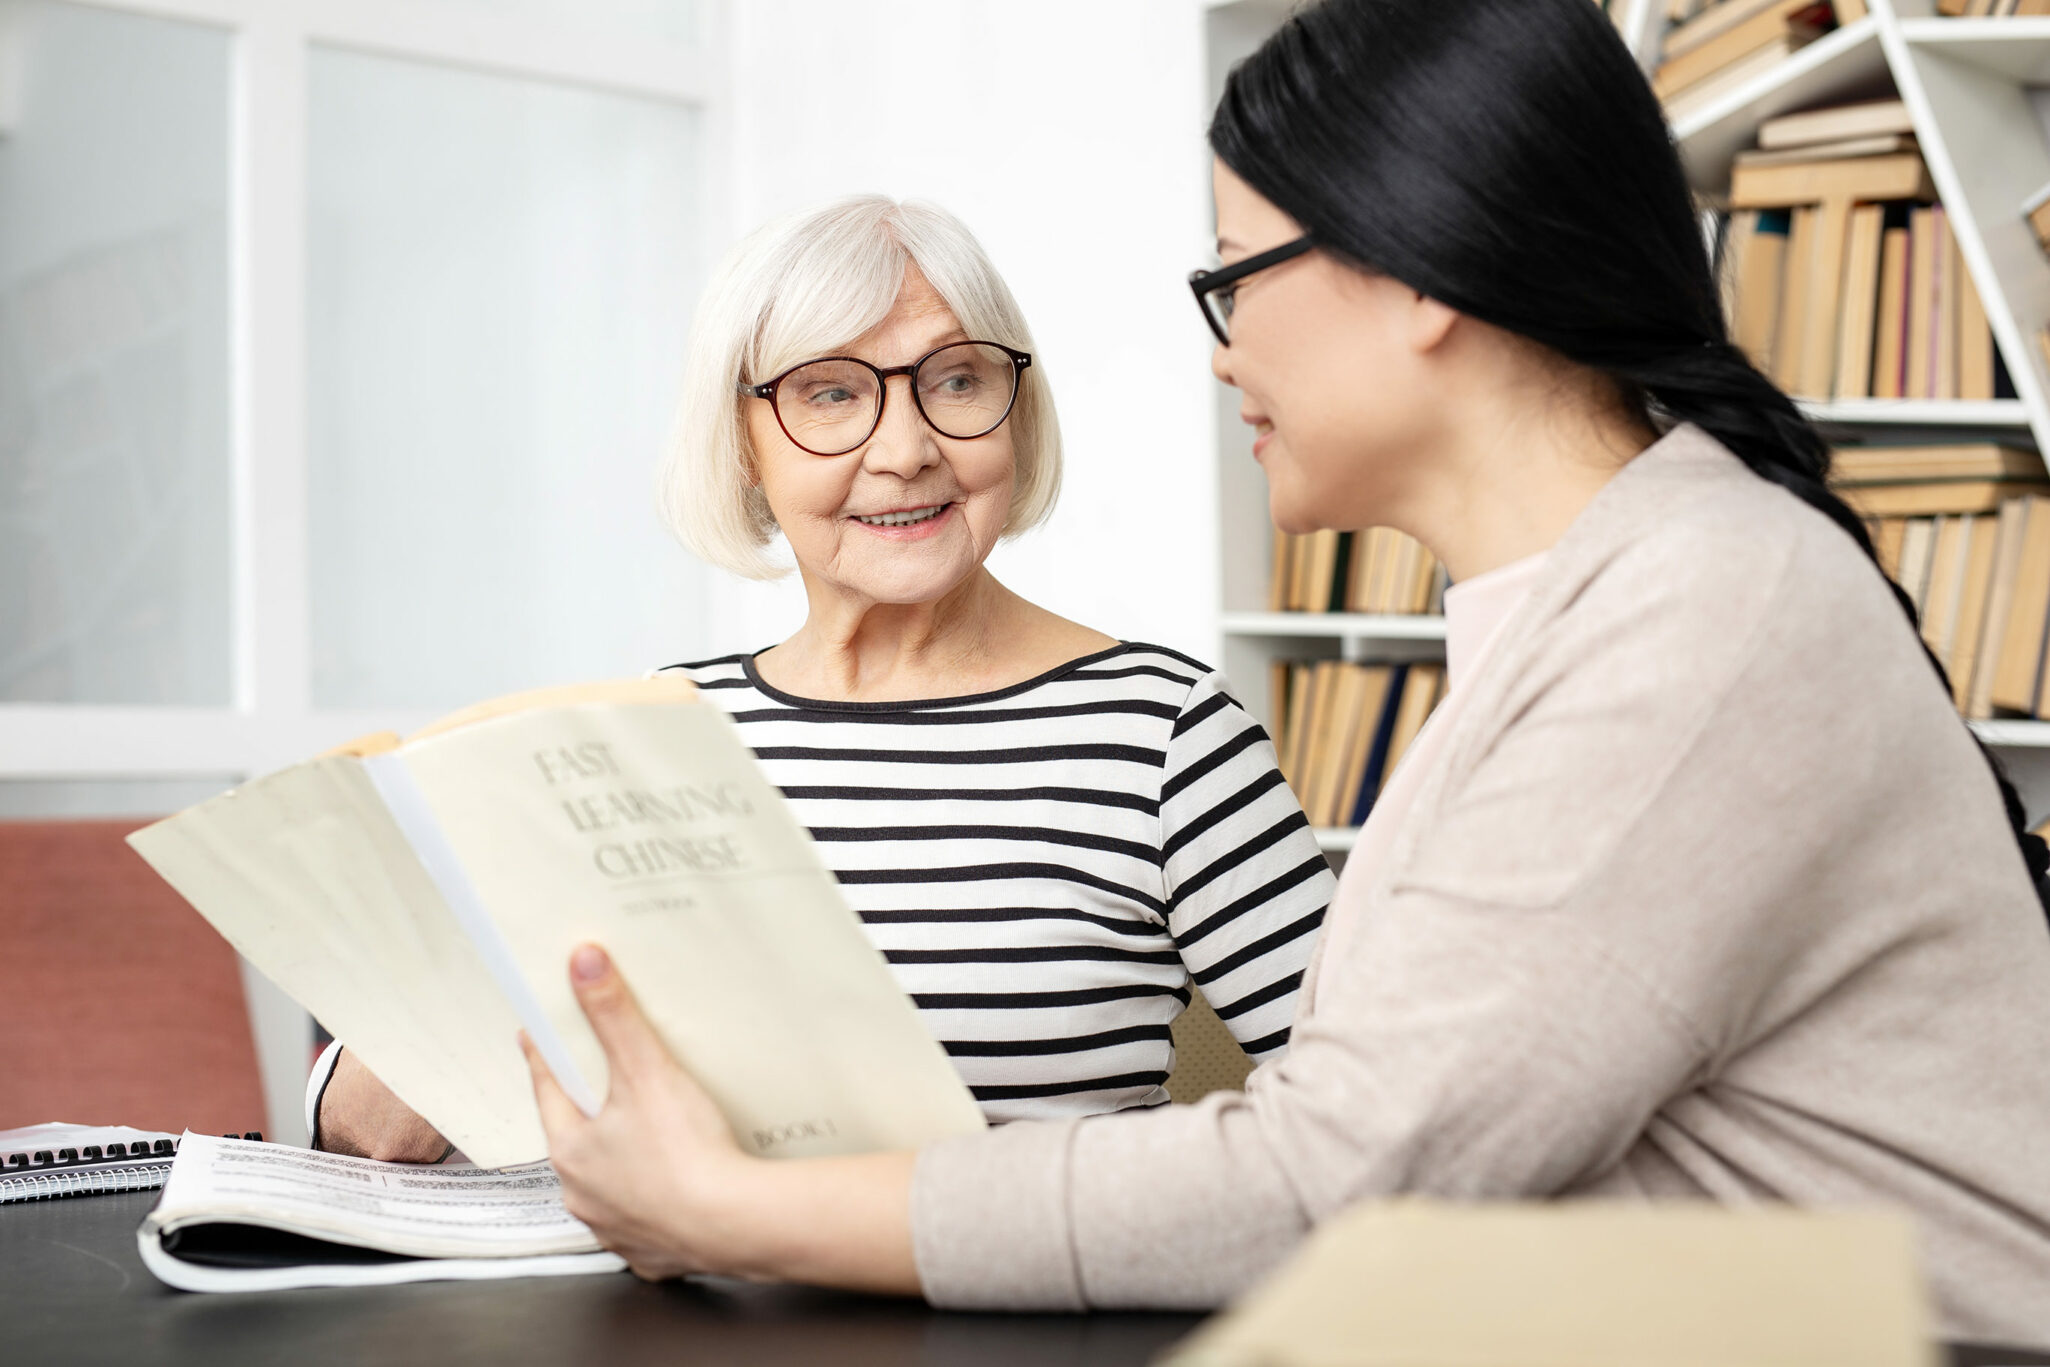 A woman helps a senior woman study from a book